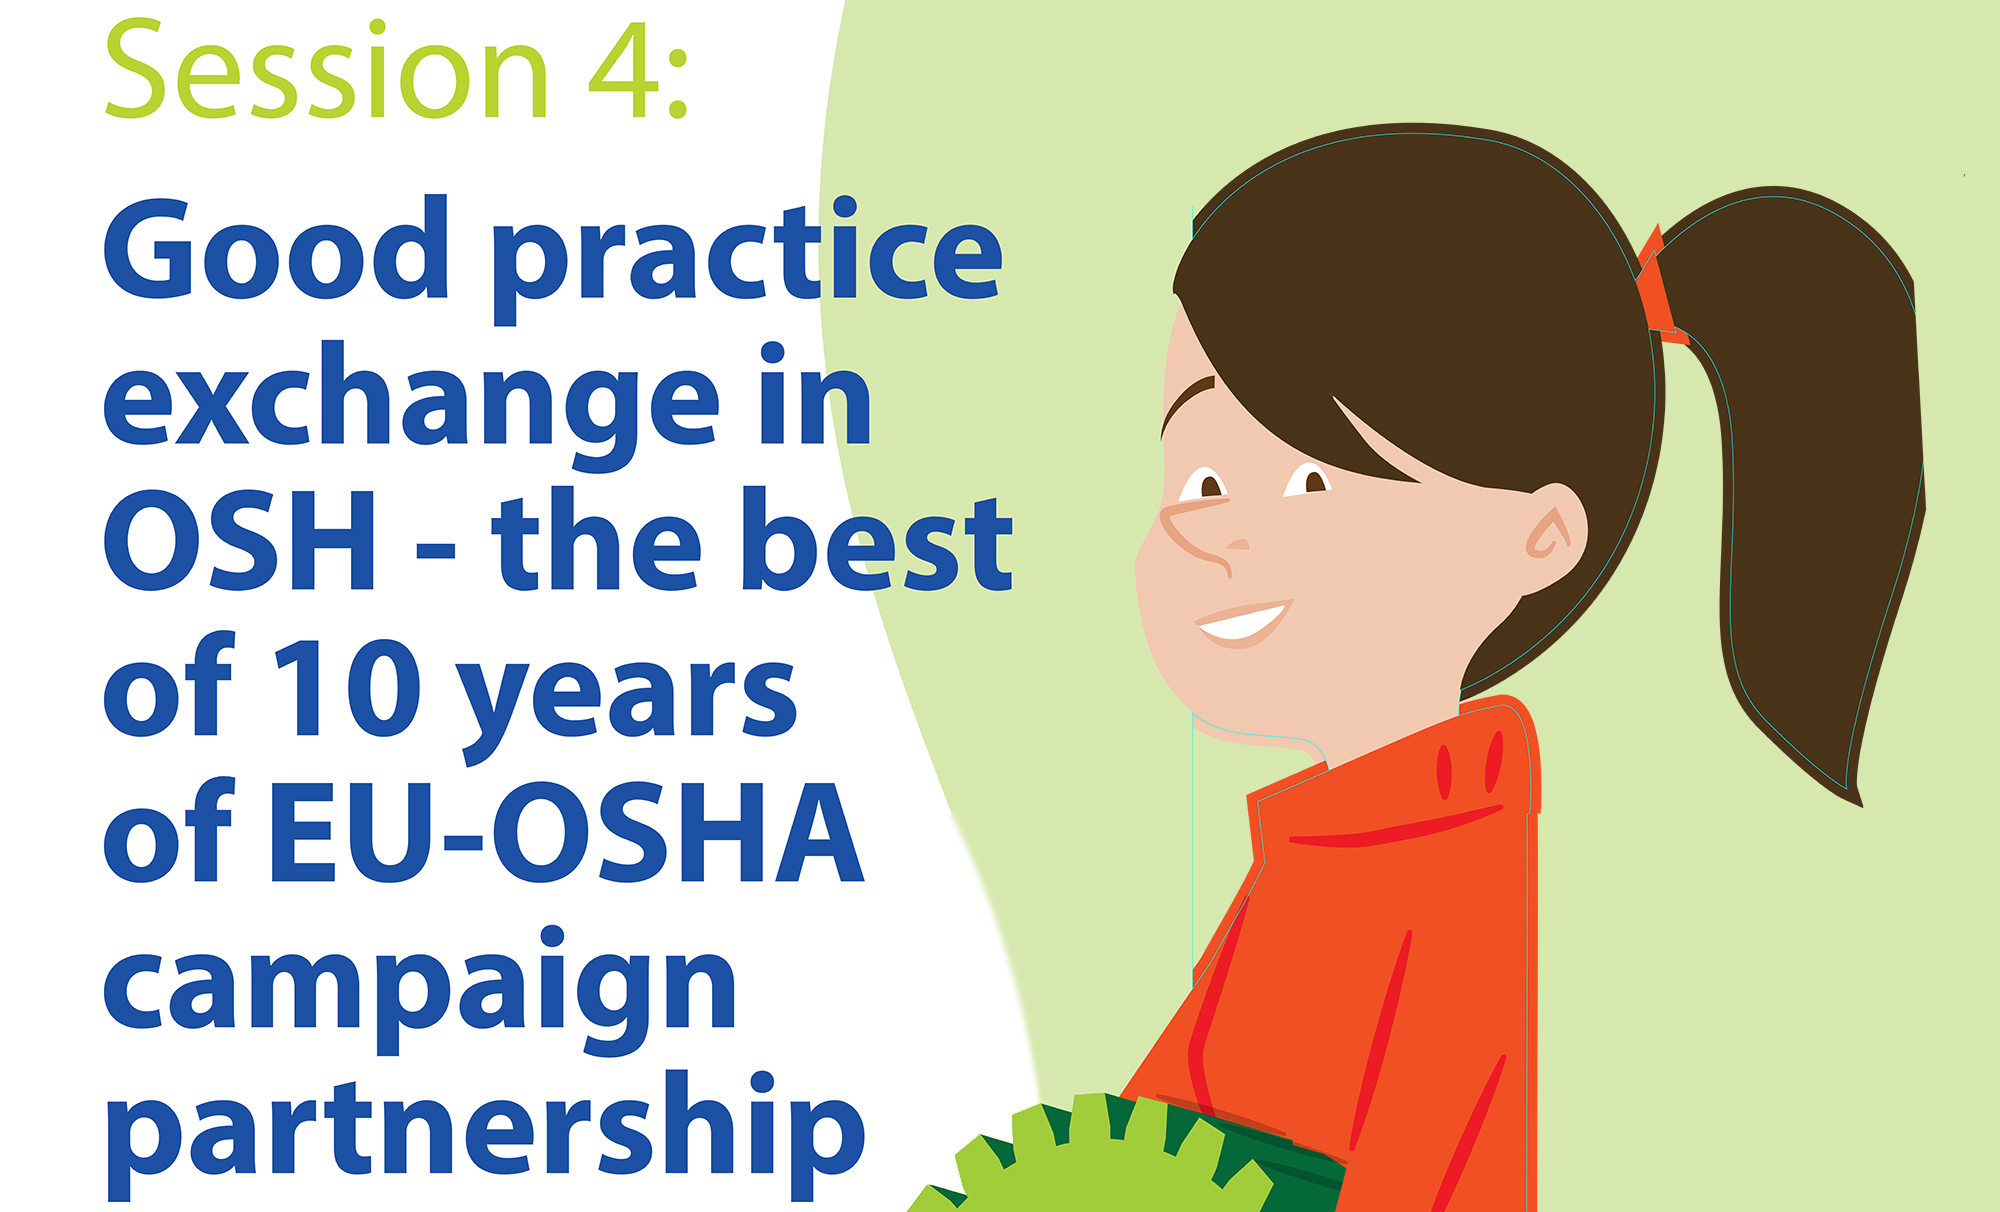 Parallel session 4 - Good practice exchange in OSH – 10 years of EU-OSHA campaign partnership